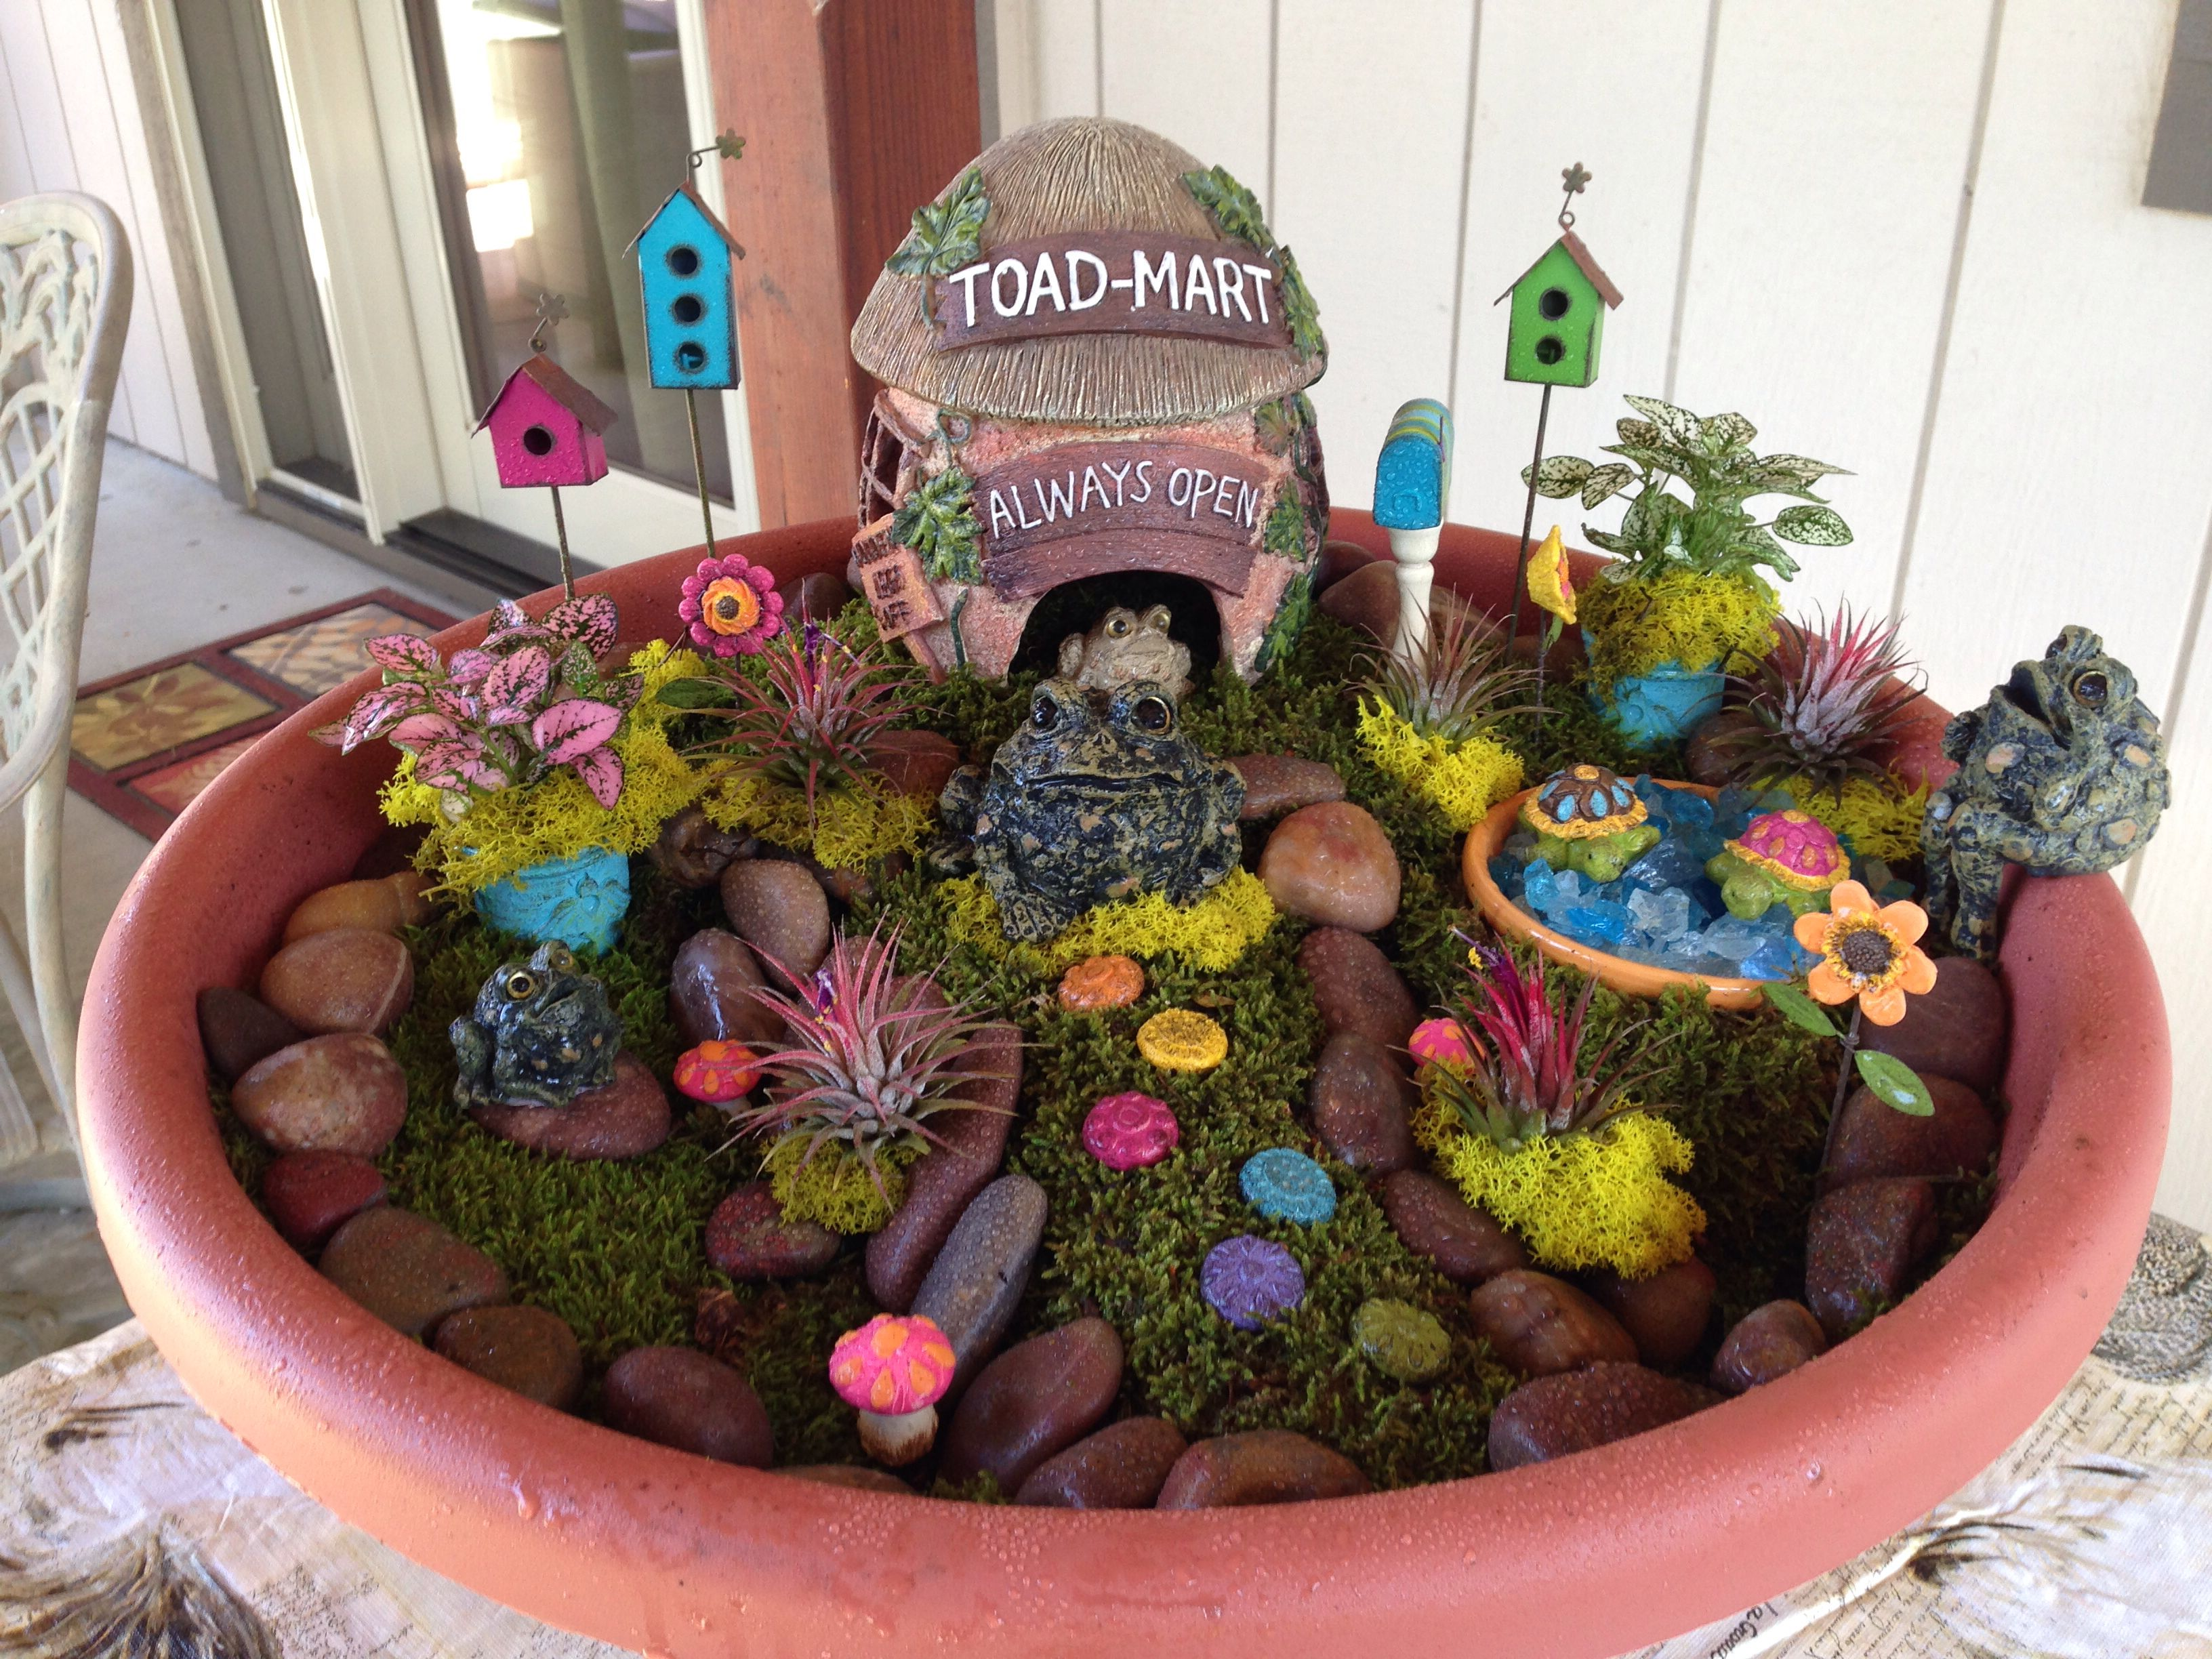 This is my outdoor frog house | Frog house, Fairy garden